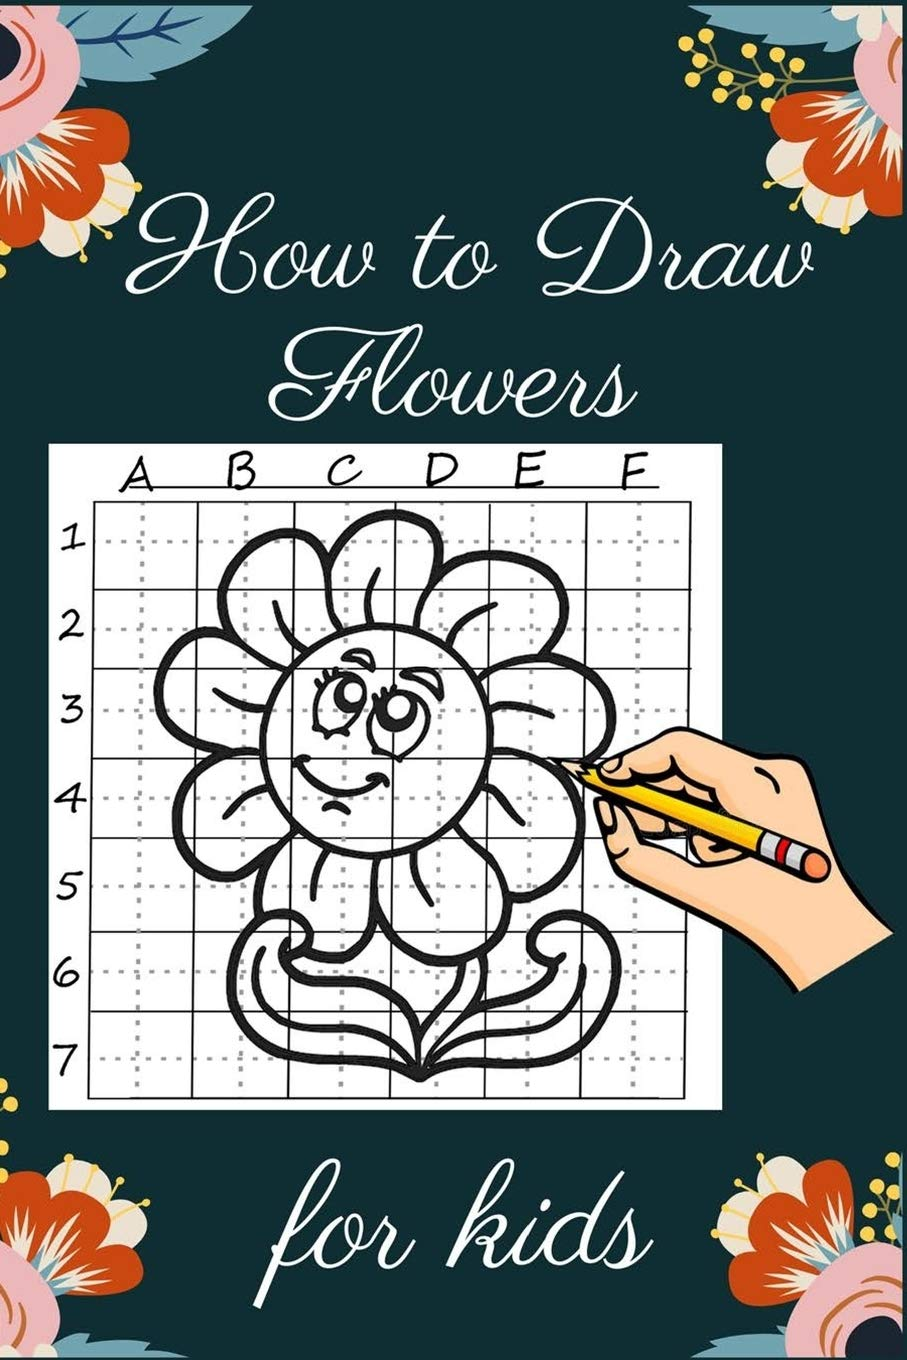 Amazon Com How To Draw Flowers For Kids A Step By Step Guide To Drawing Flowers Activity Book For Kids 9798648691483 Bryant James Books